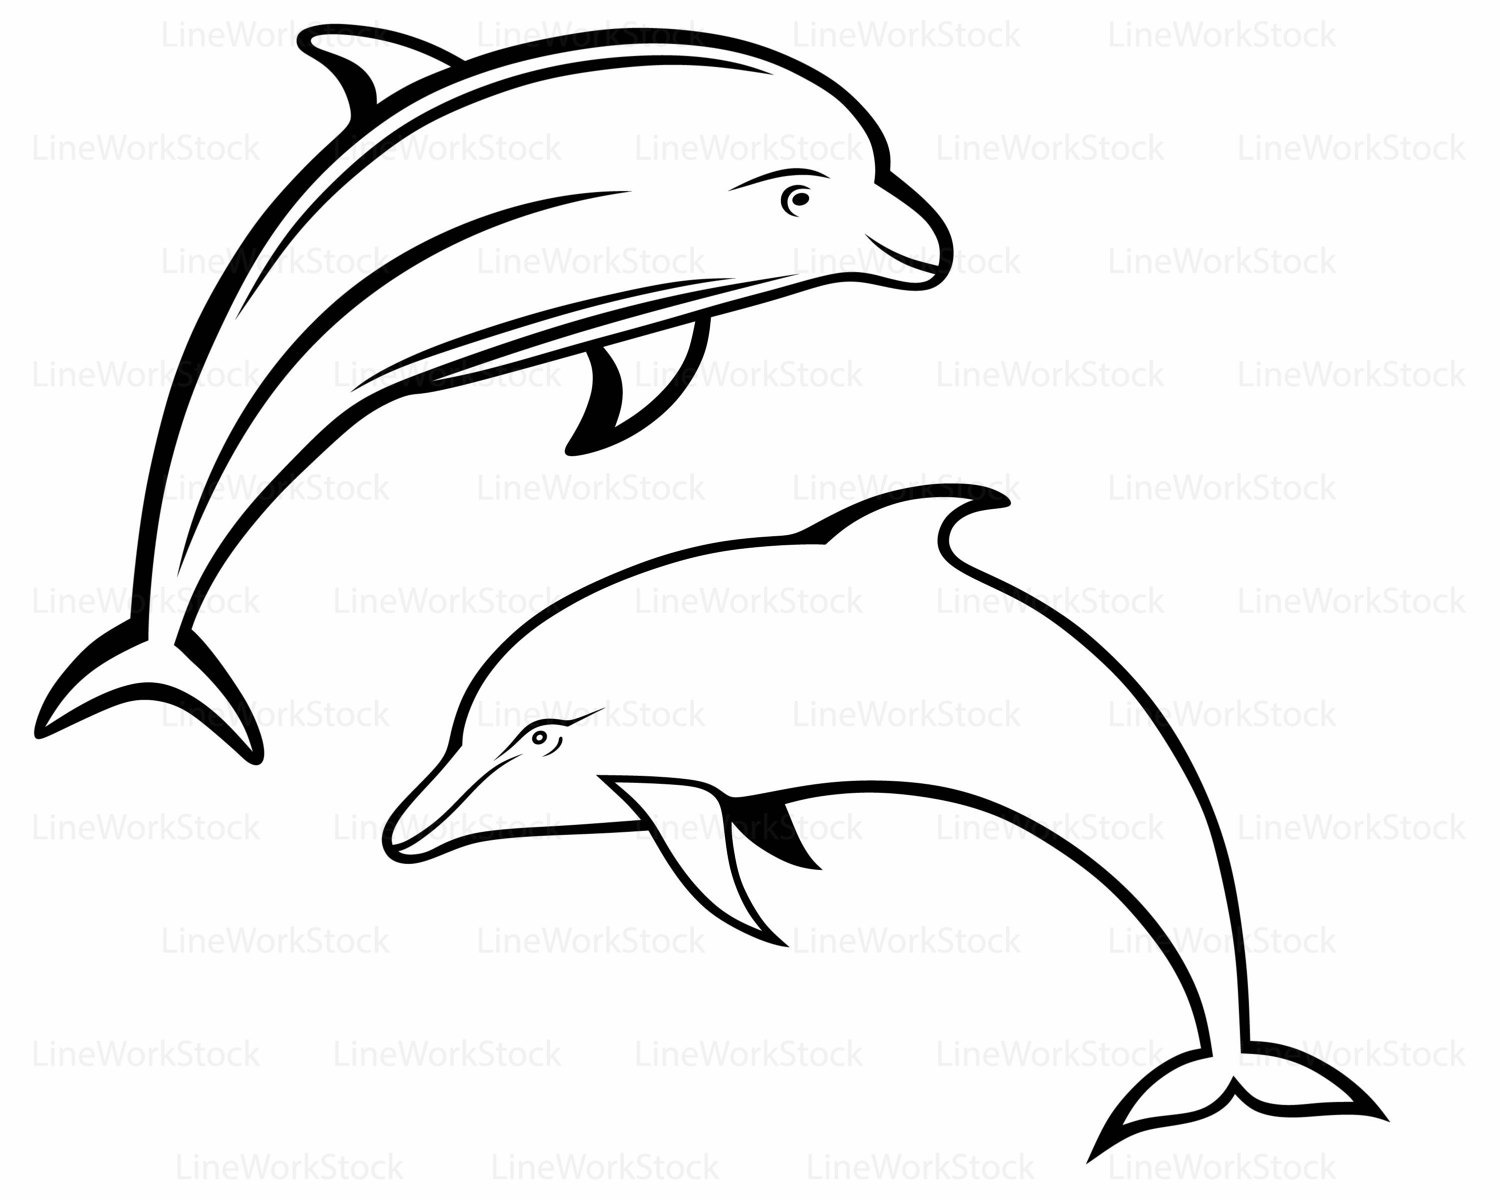 1500x1200 Dolphin Svg,dolphin Clipart,dolphin Svg,dolphin Silhouette,dolphin